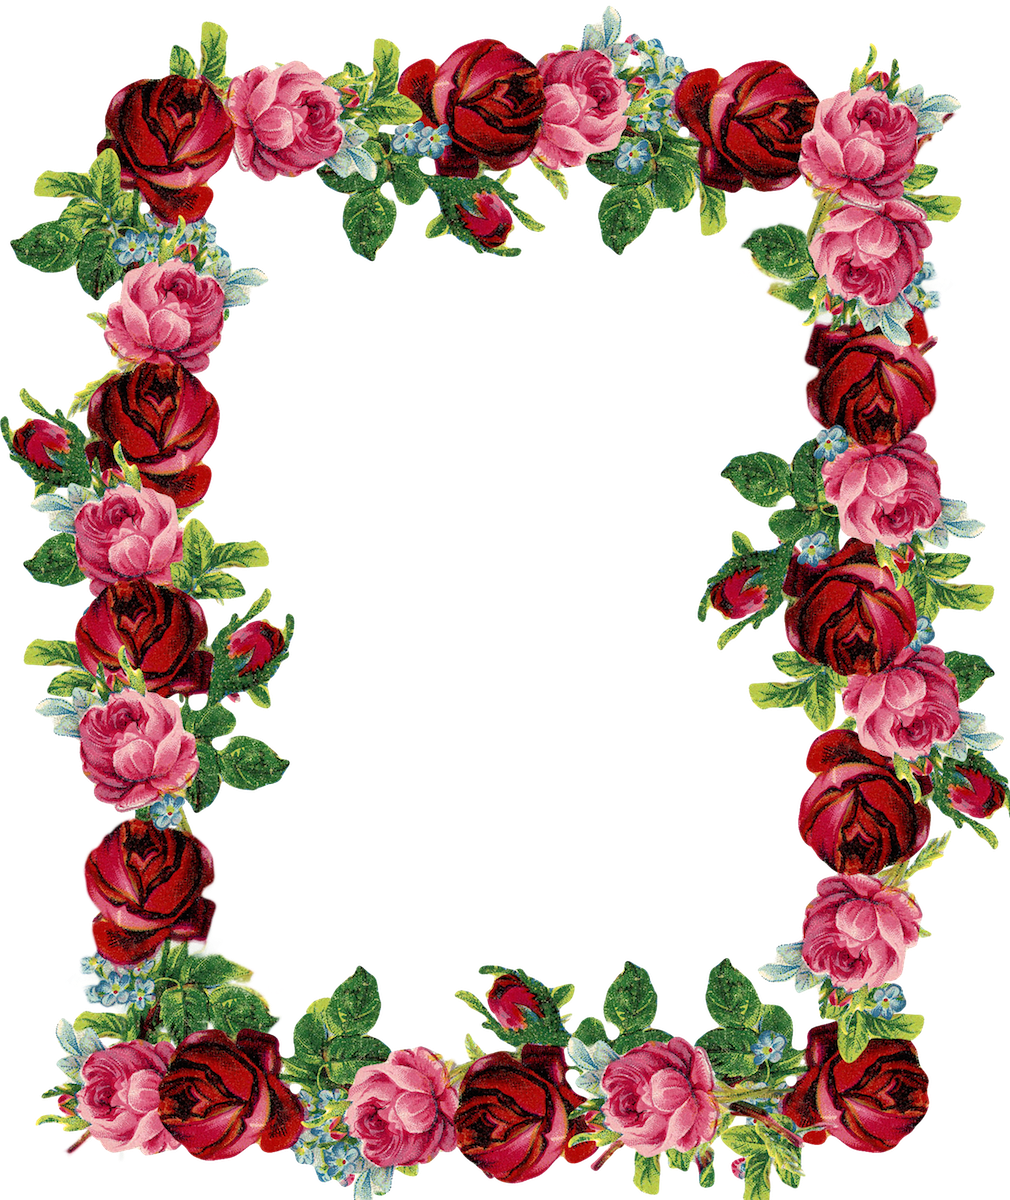 graphic relating to Free Printable Flower Borders identify Totally free electronic basic rose body and border png - Rosenrahmen